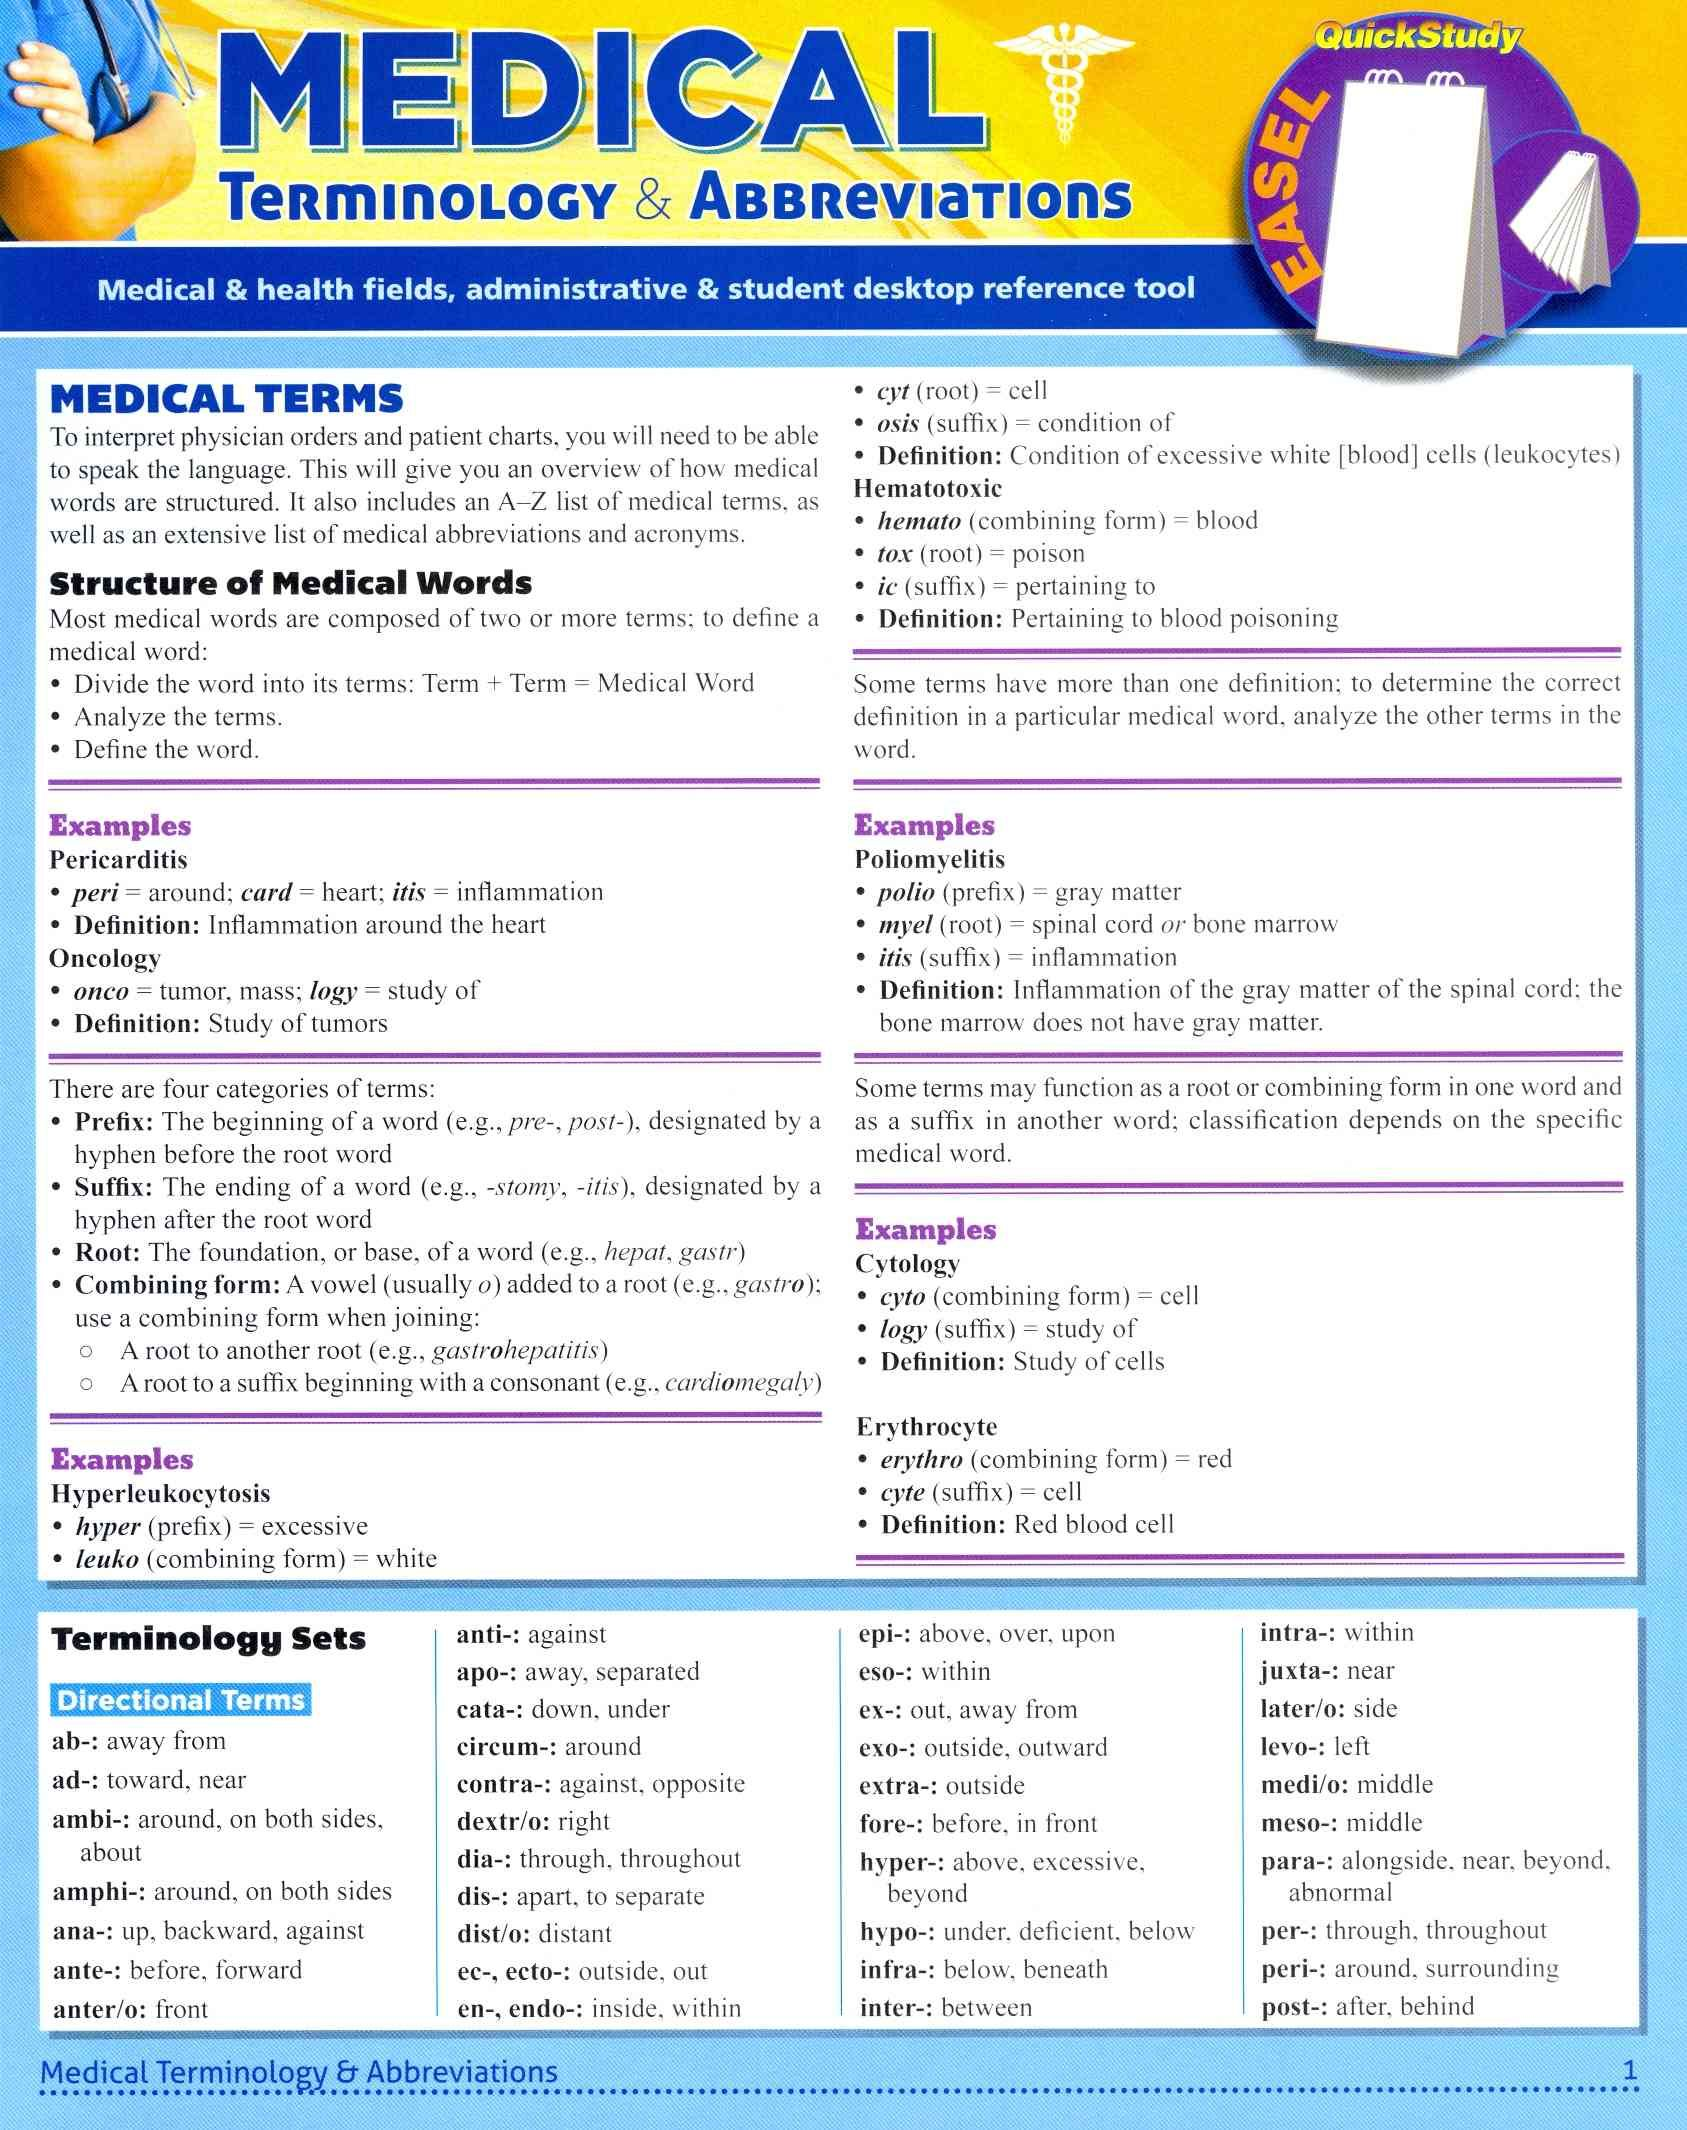 Word Roots Amspar Medical Terminology Study Aid